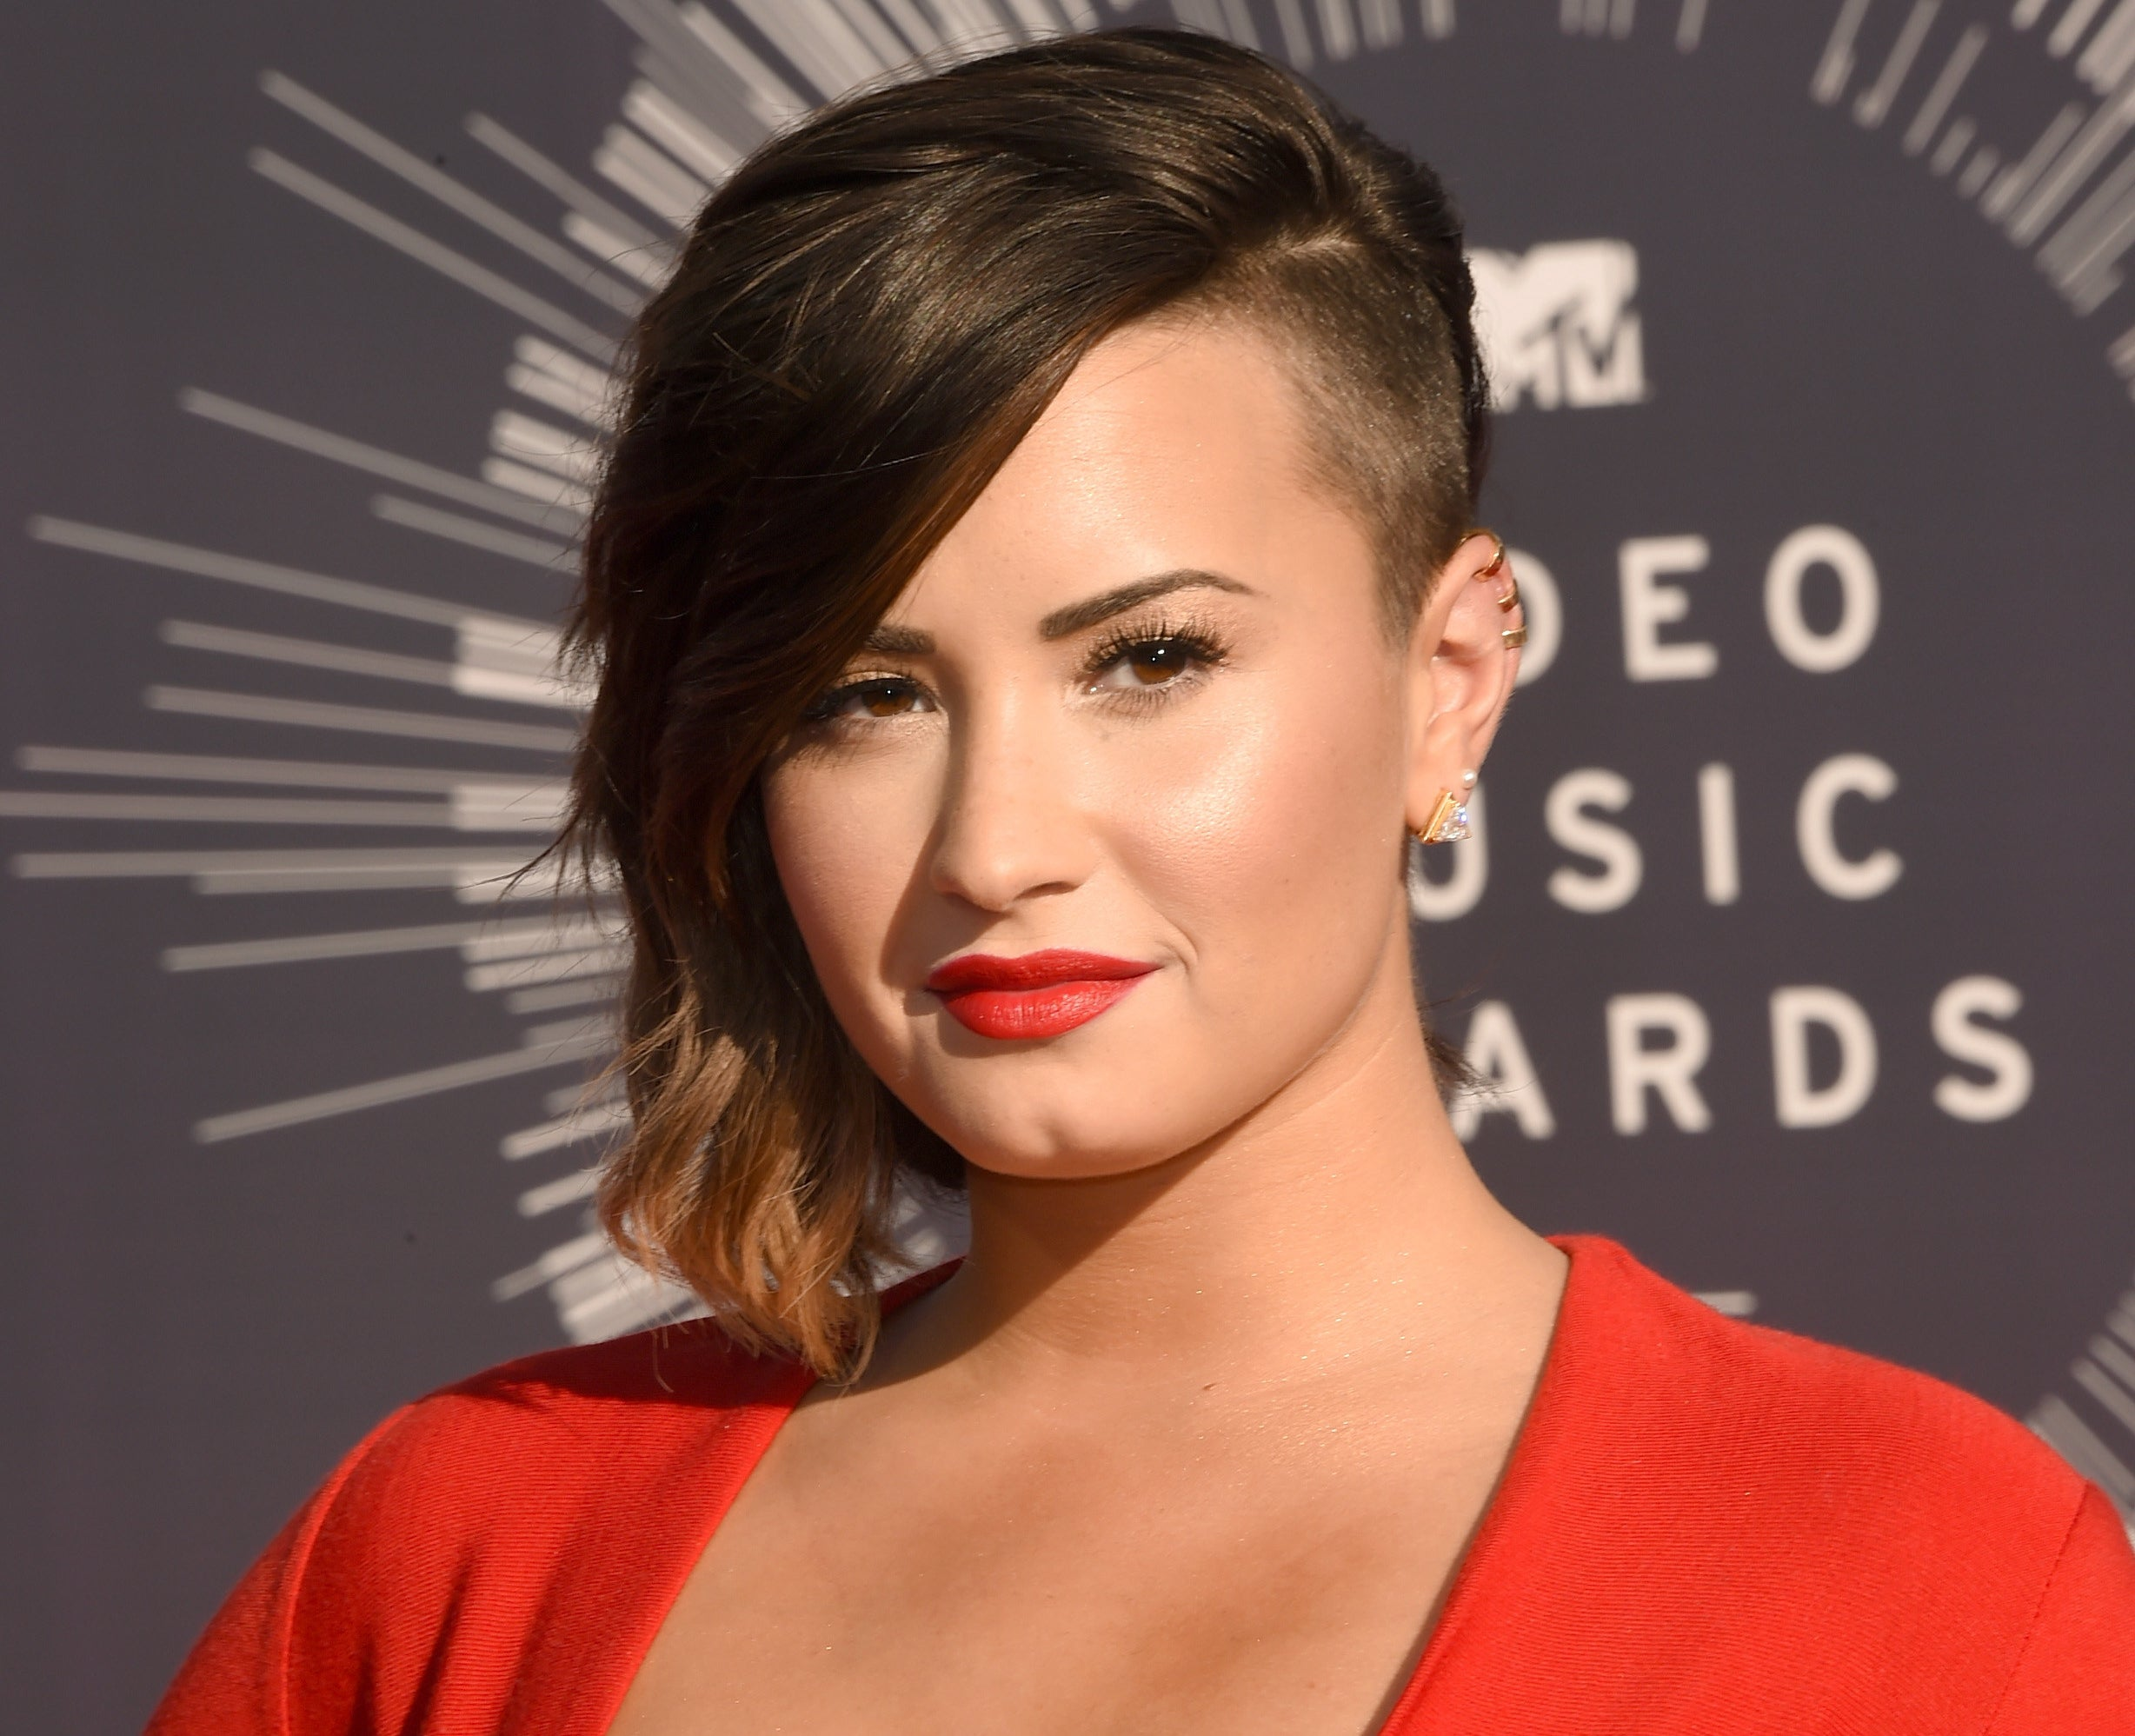 Demi attends an event showing off their shaved side